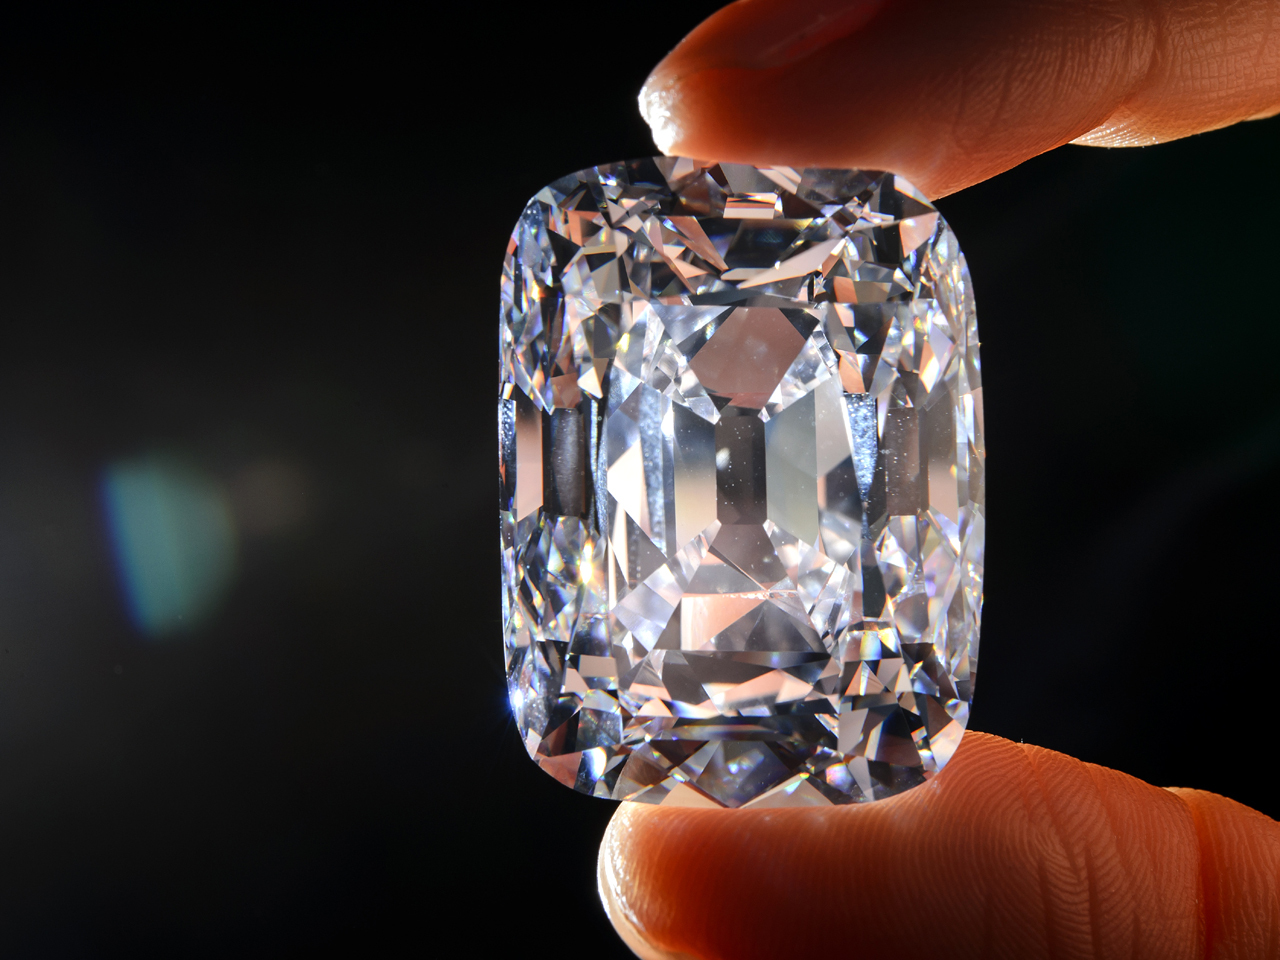 76 Carat Stone Sells In Auction For Record Price Cbs News